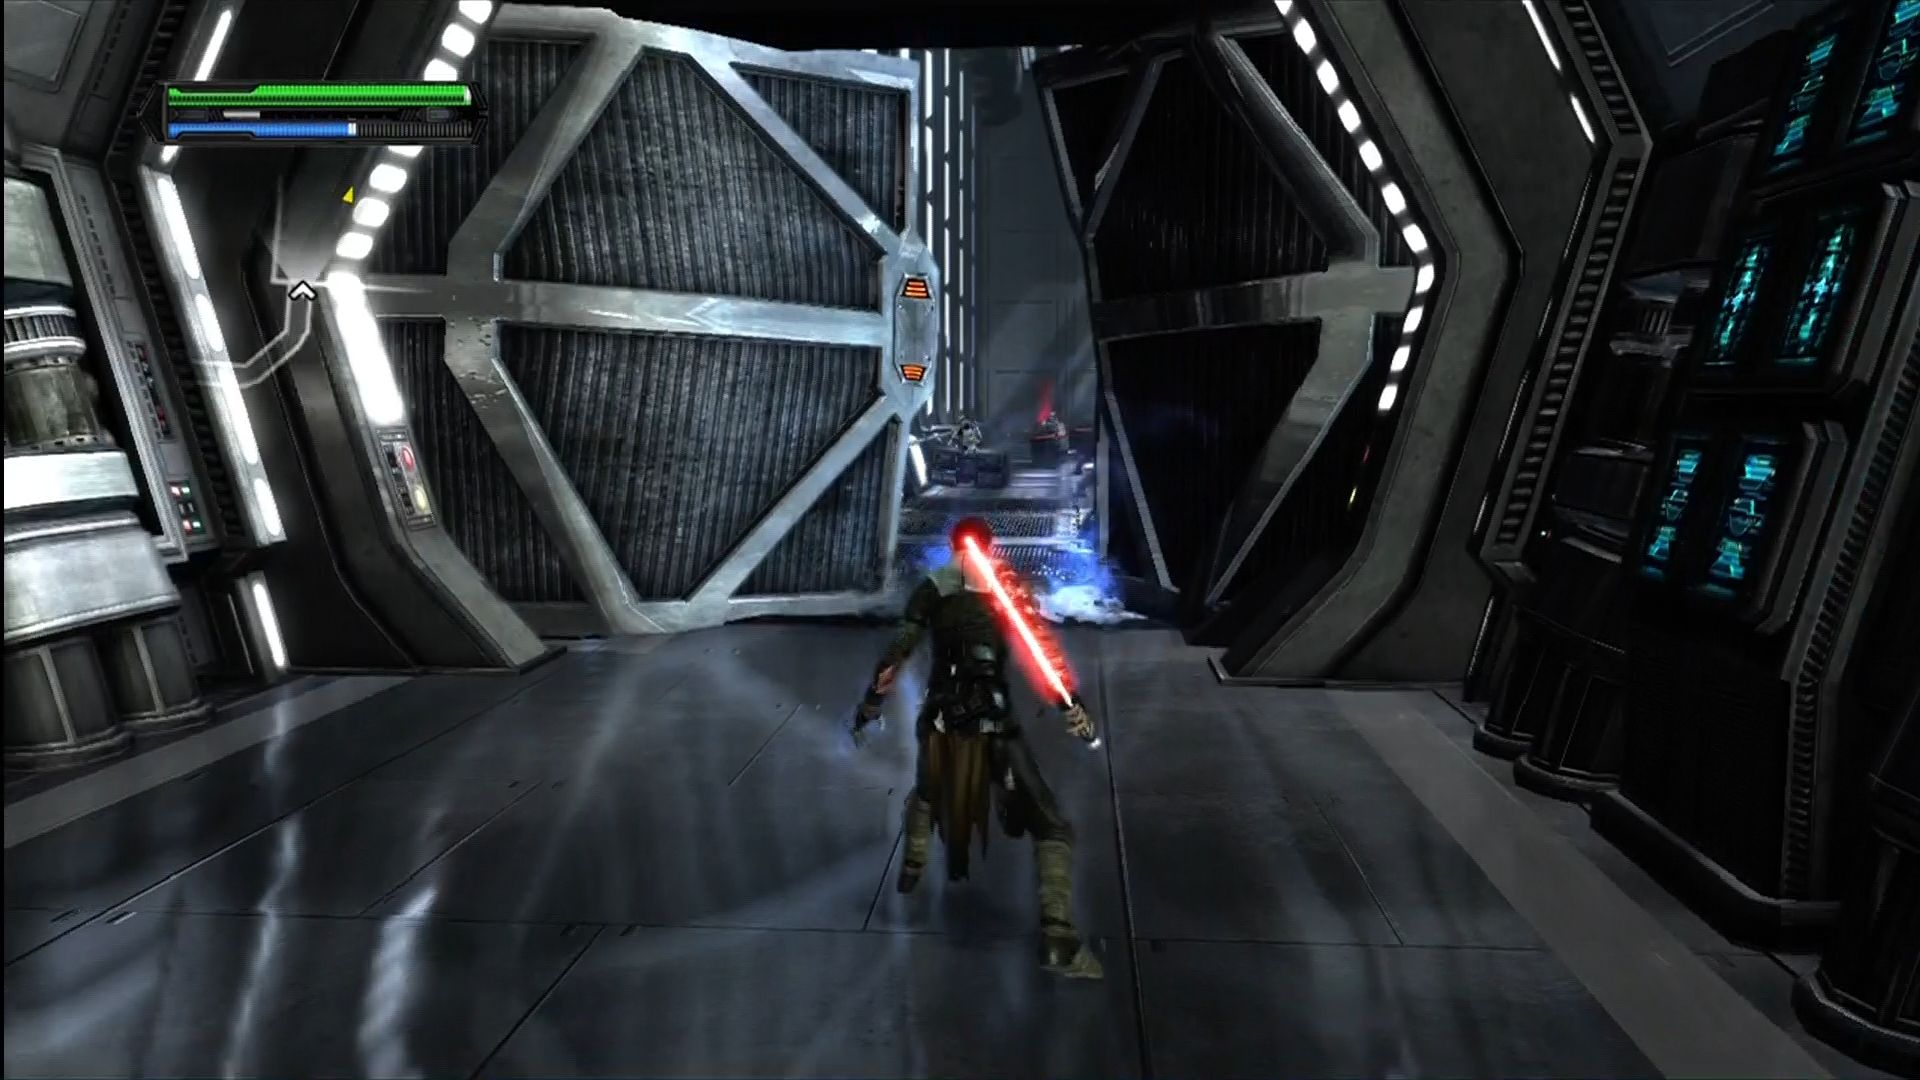 Star Wars: The Force Unleashed Xbox 360 Using the Force to blast open these doors.